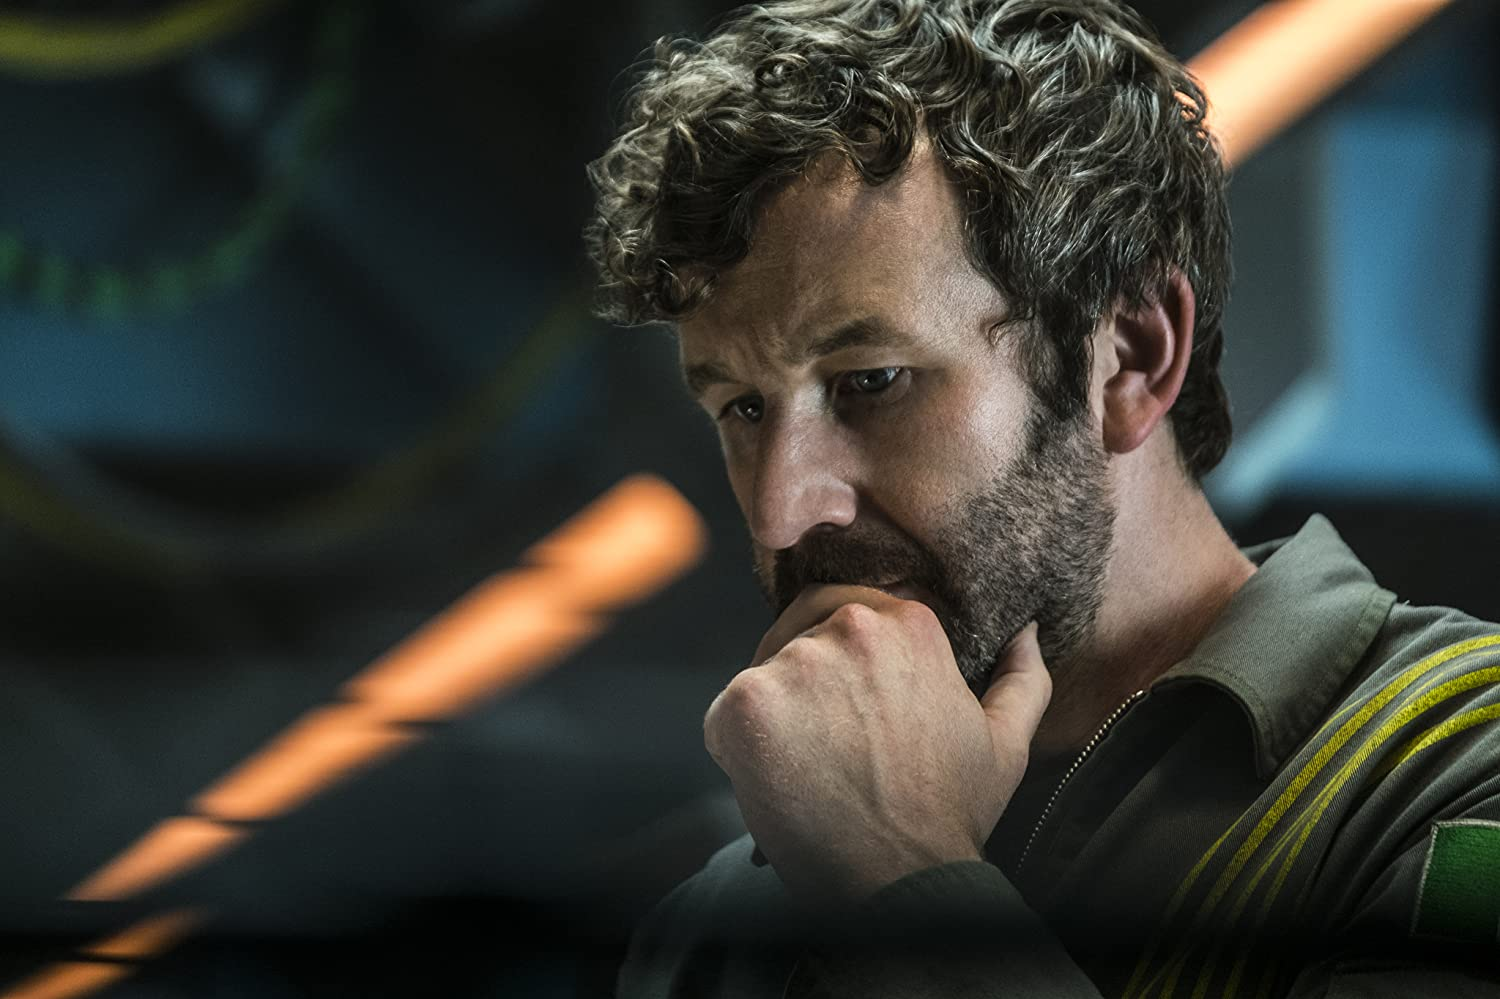 Chris O'Dowd in The Cloverfield Paradox (2018)